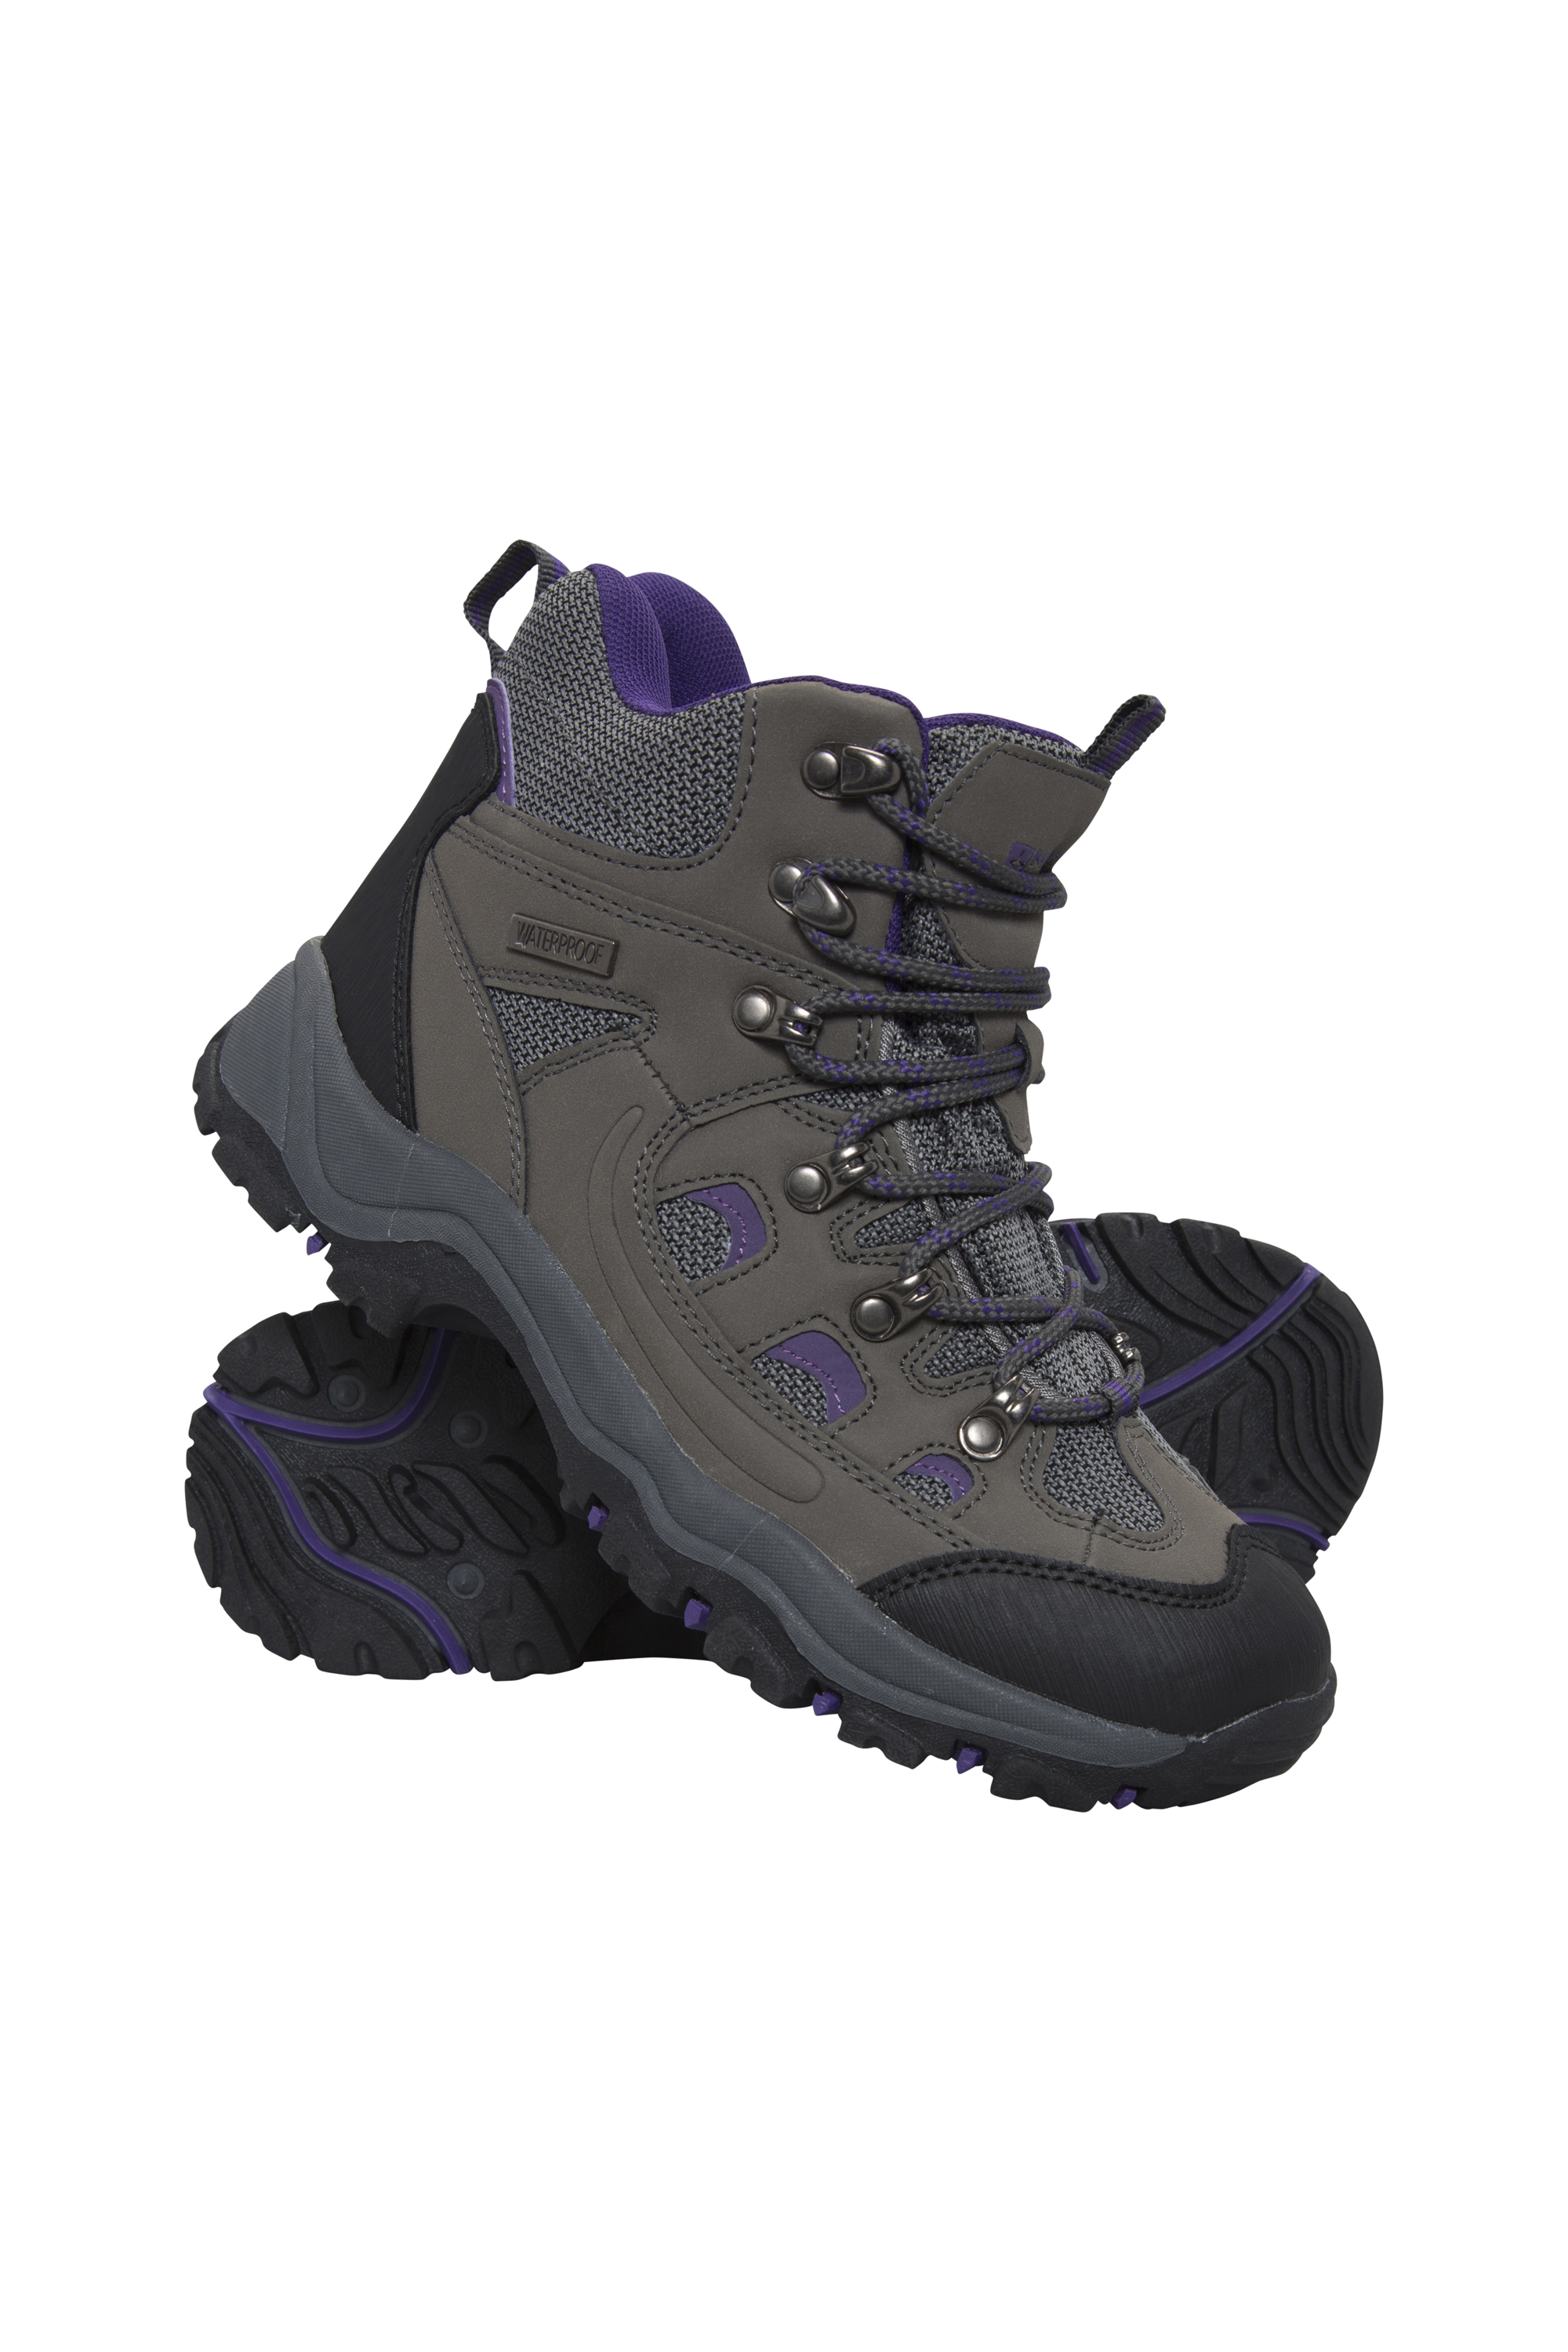 Walking Boots | Waterproof Hiking Boots | Mountain Warehouse GB